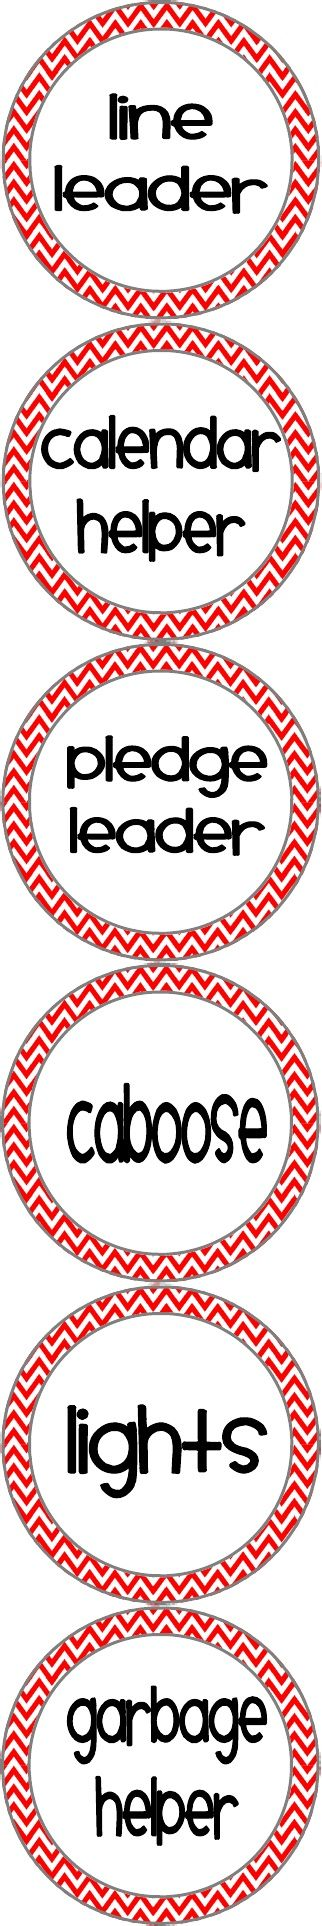 Classroom Helper Chart Labels :). Pinnin g this so I remember to add light helper next year.